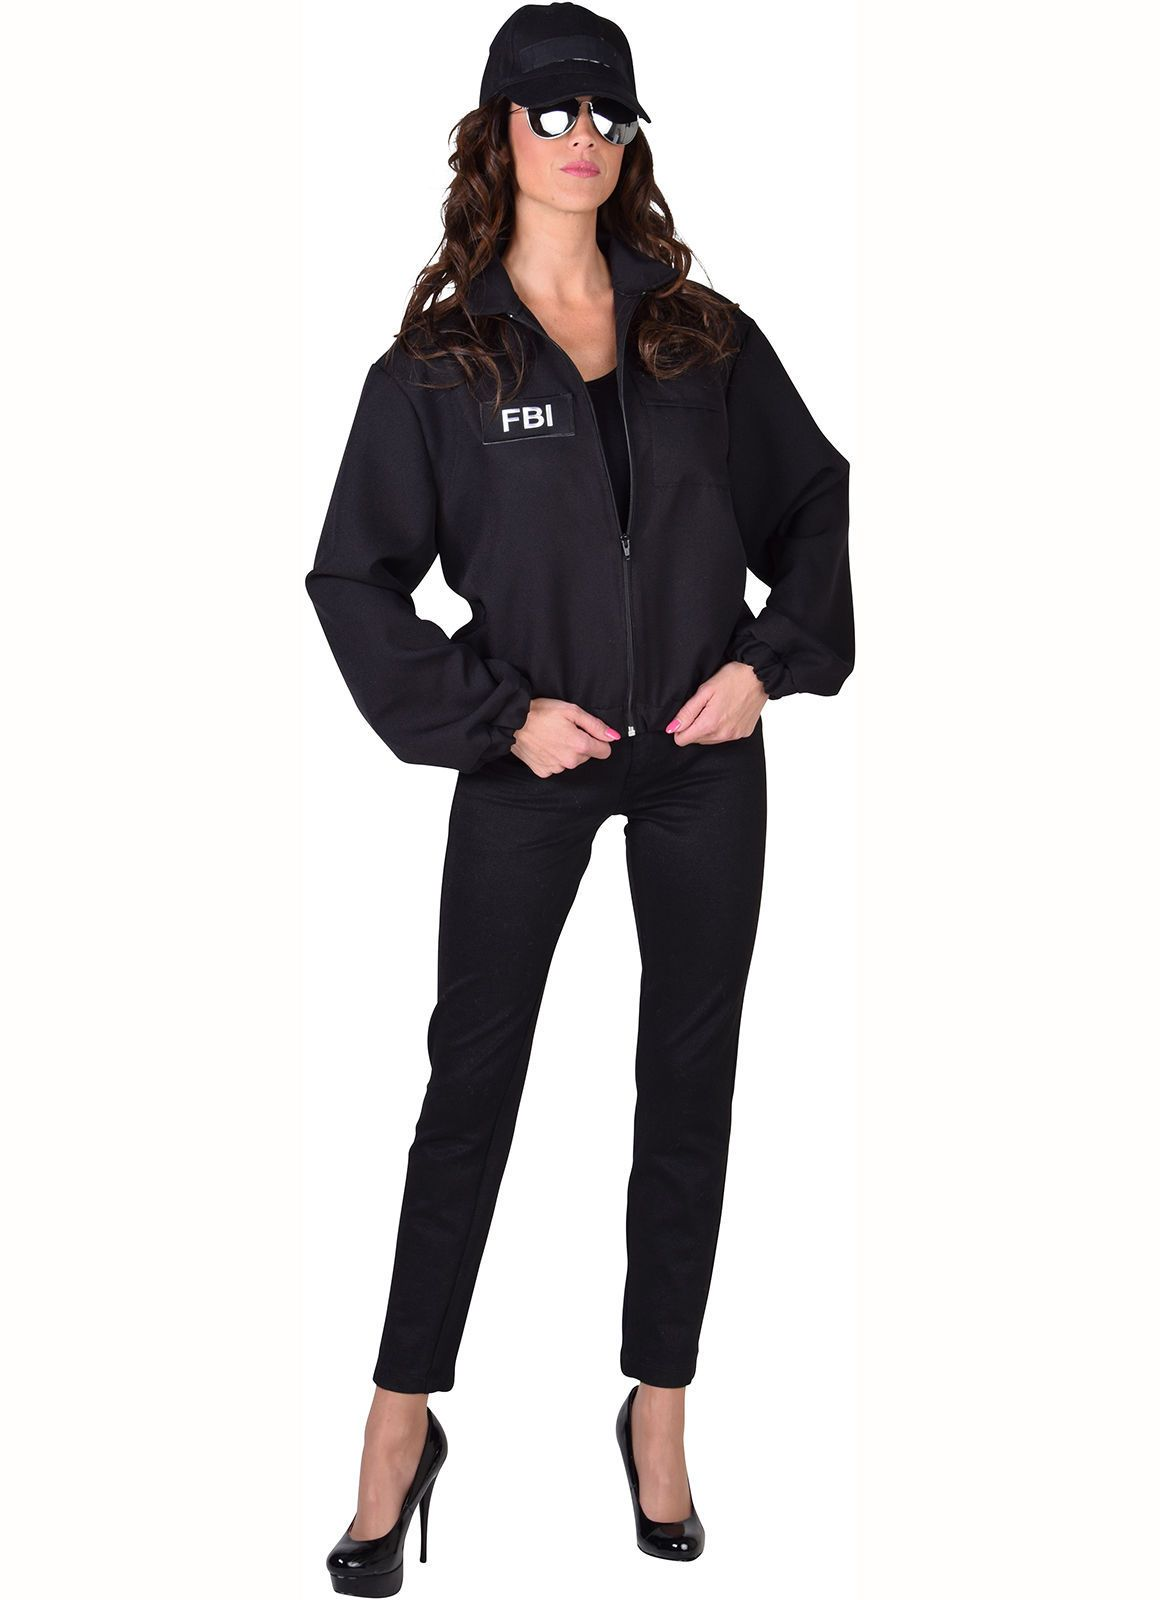 33bfa6a56 A SPLENDID QUALITY COSTUME JACKET - THIS IS IDEAL FOR A FBI THEME ...